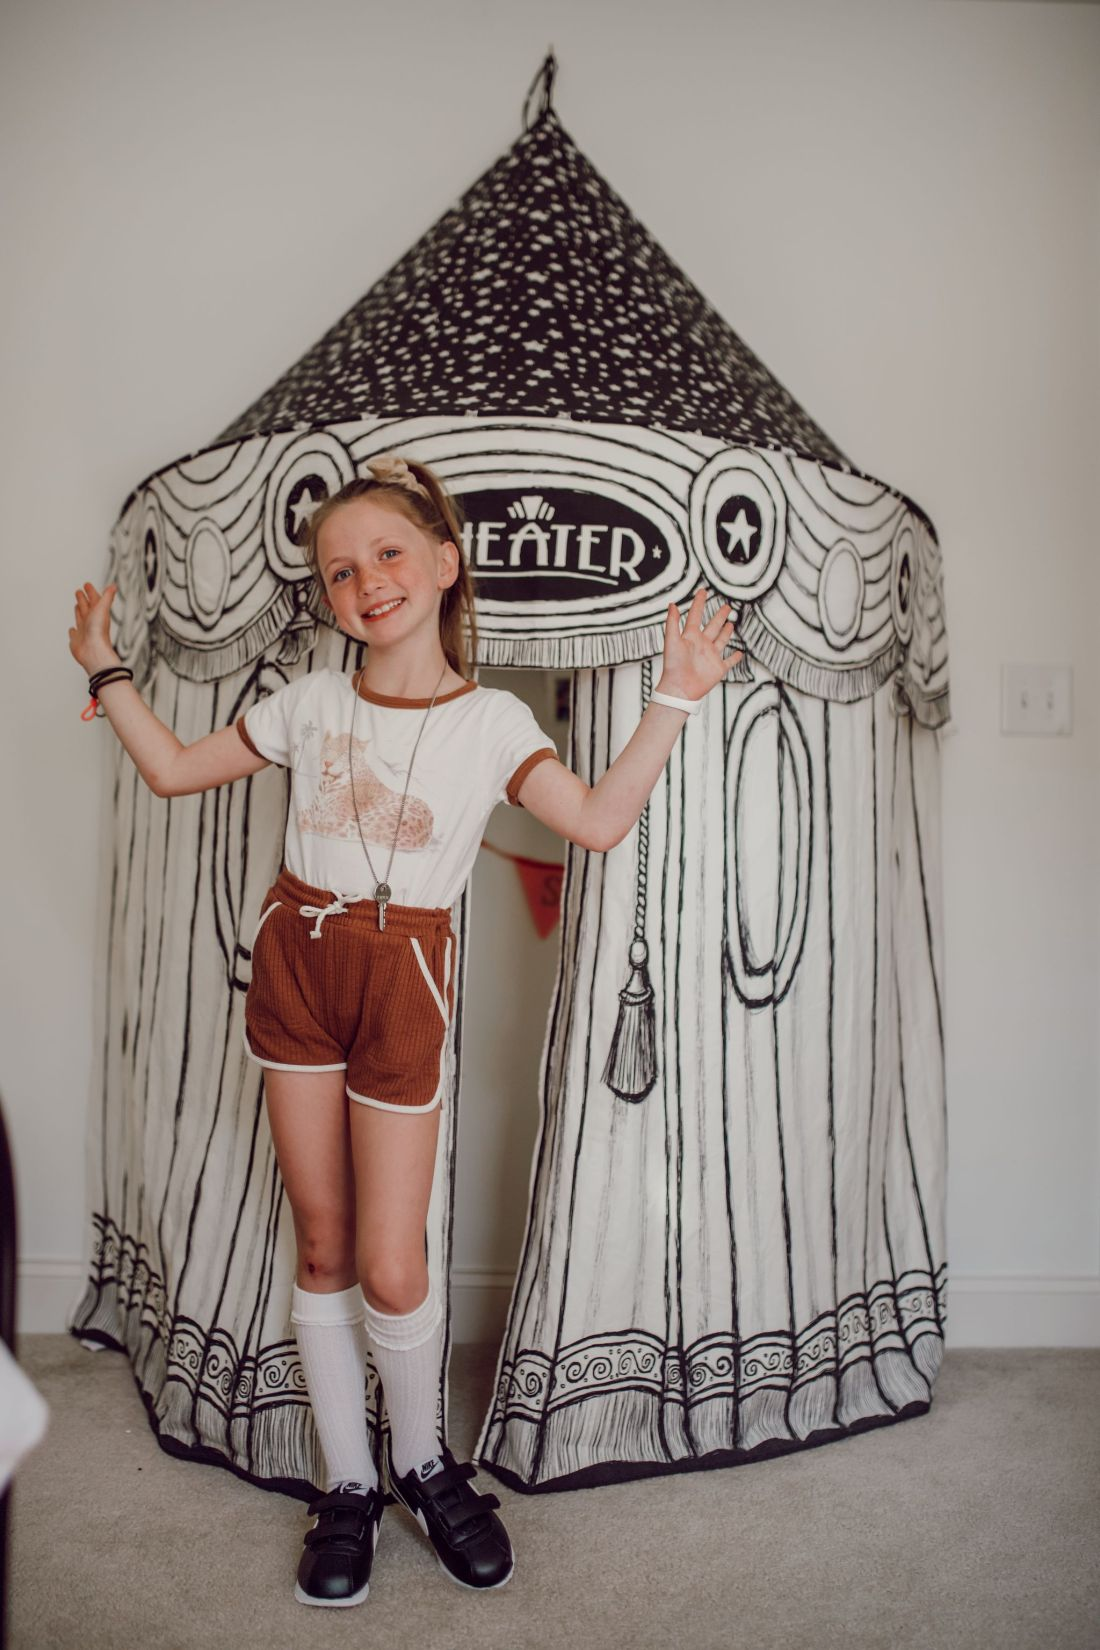 Homeschooling Journey by popular Nashville lifestyle blog, Modern Day Moguls: image of a little girl wearing a sports uniform and standing in front of a fabric canopy tent.